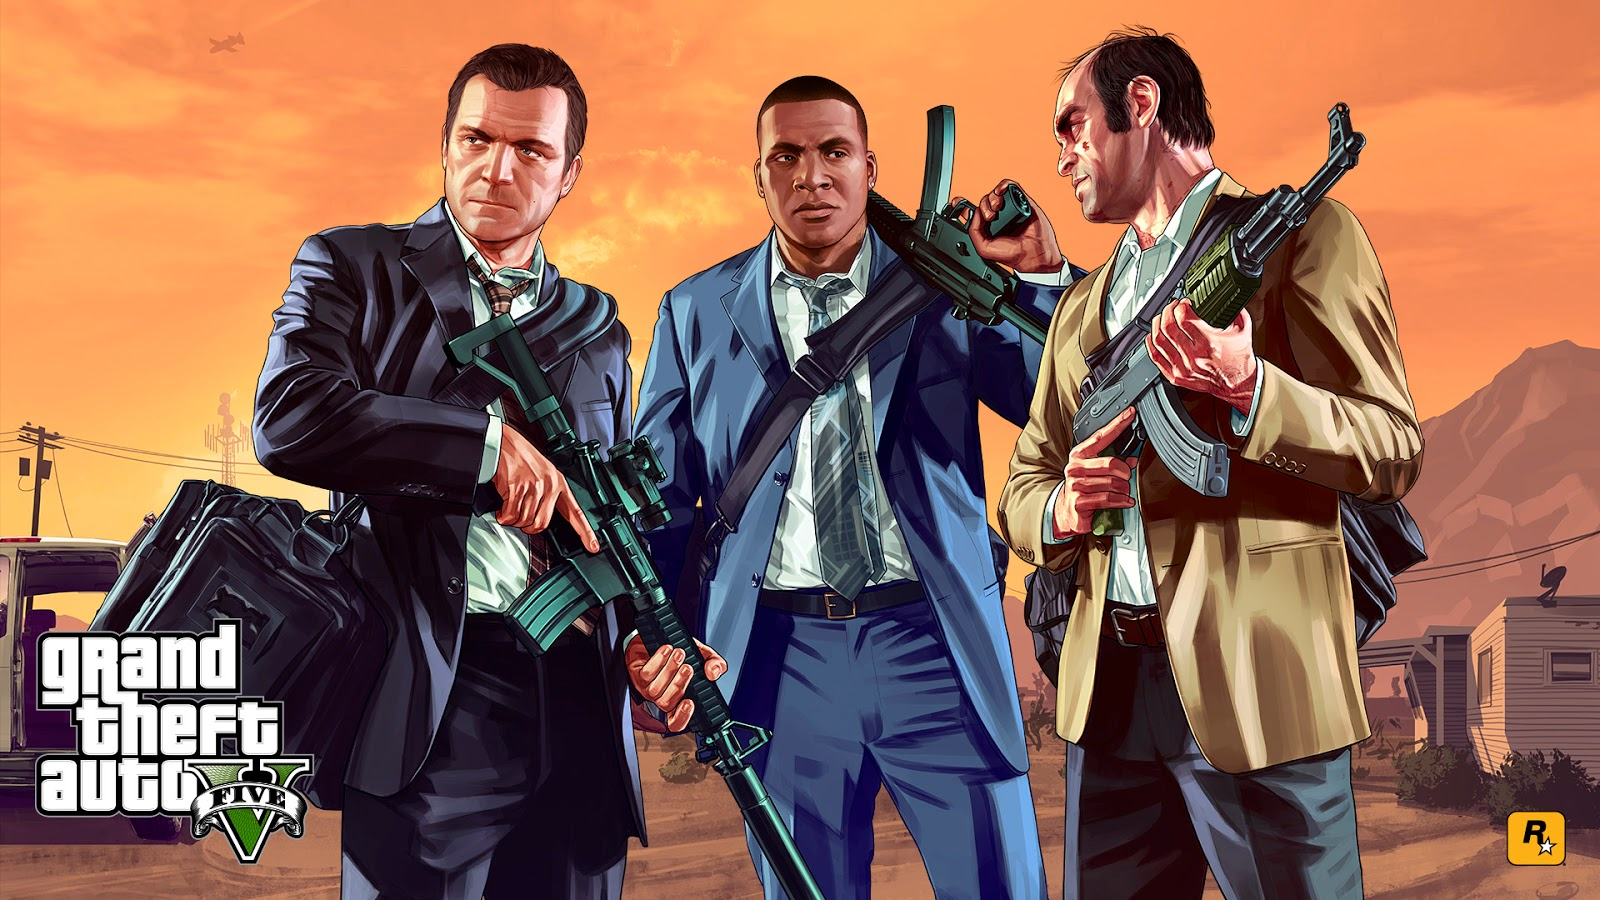 The best gta wallpaper hd for desktop computer wallpaper - Gta v wallpaper ...